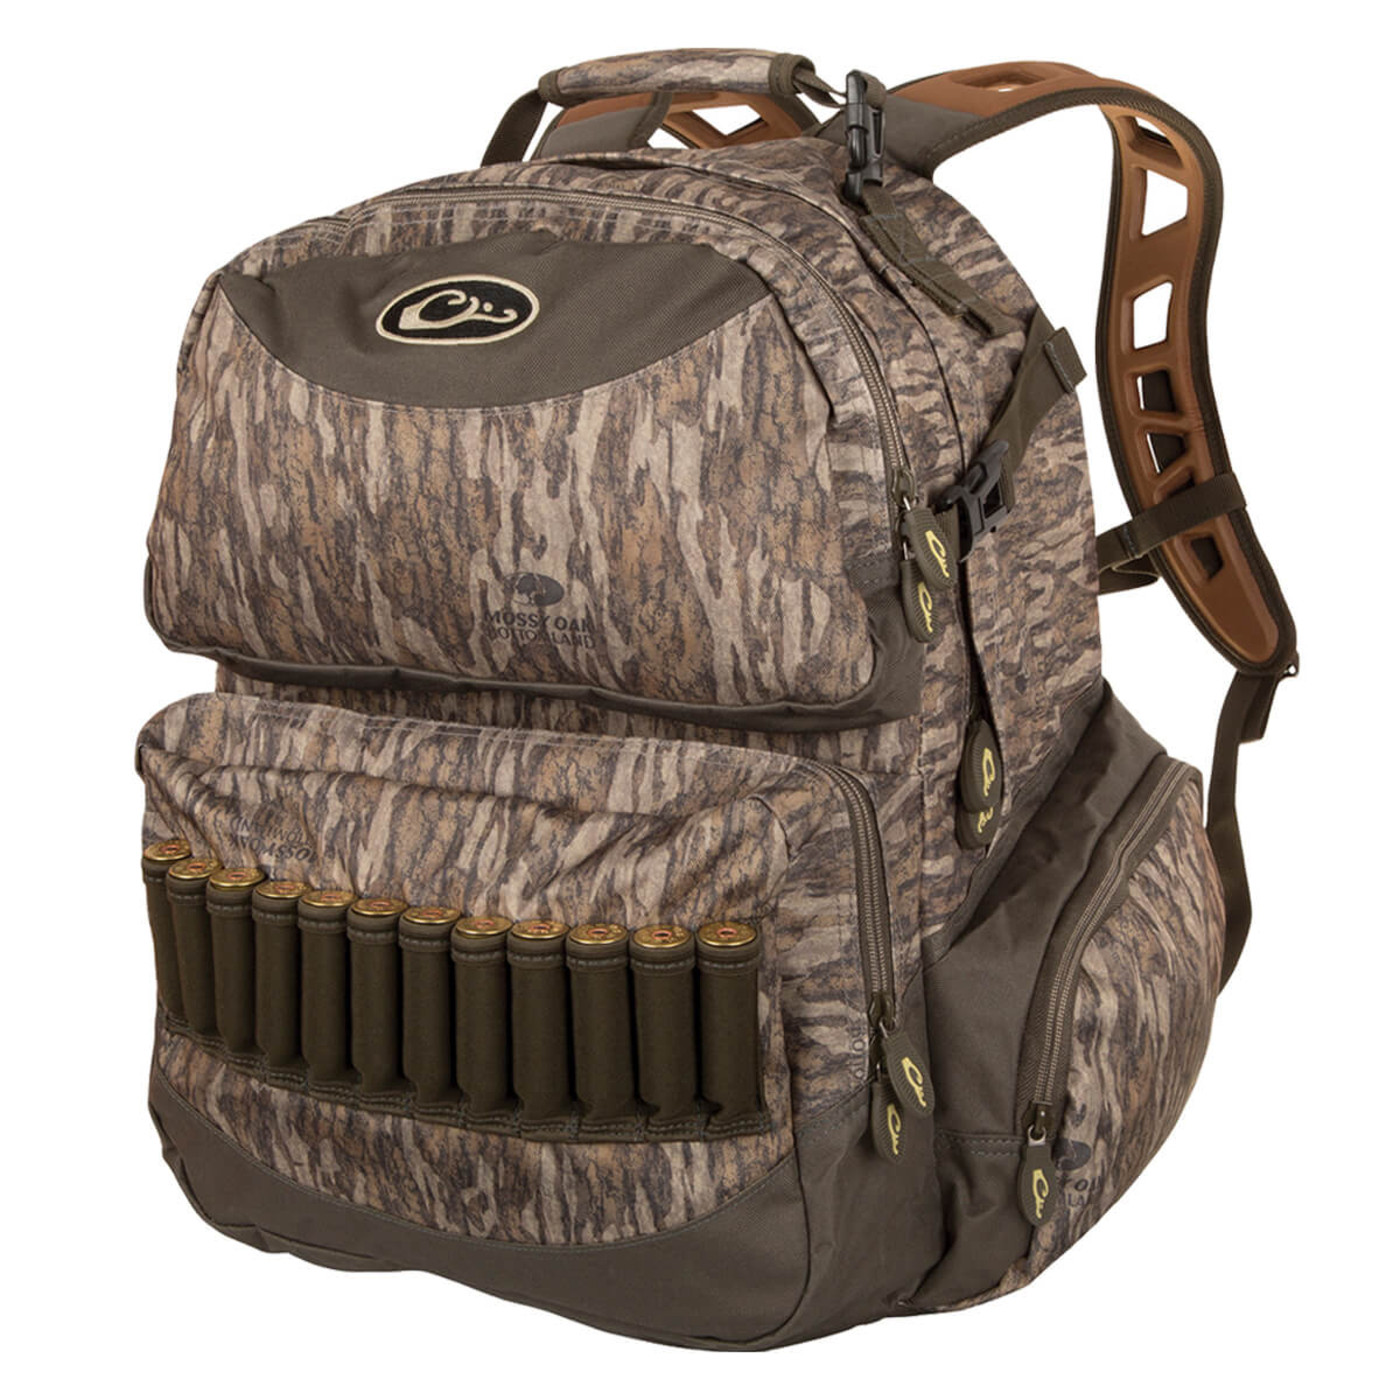 Drake Walk-In Backpack 2.0 in Mossy Oak Bottomland Color